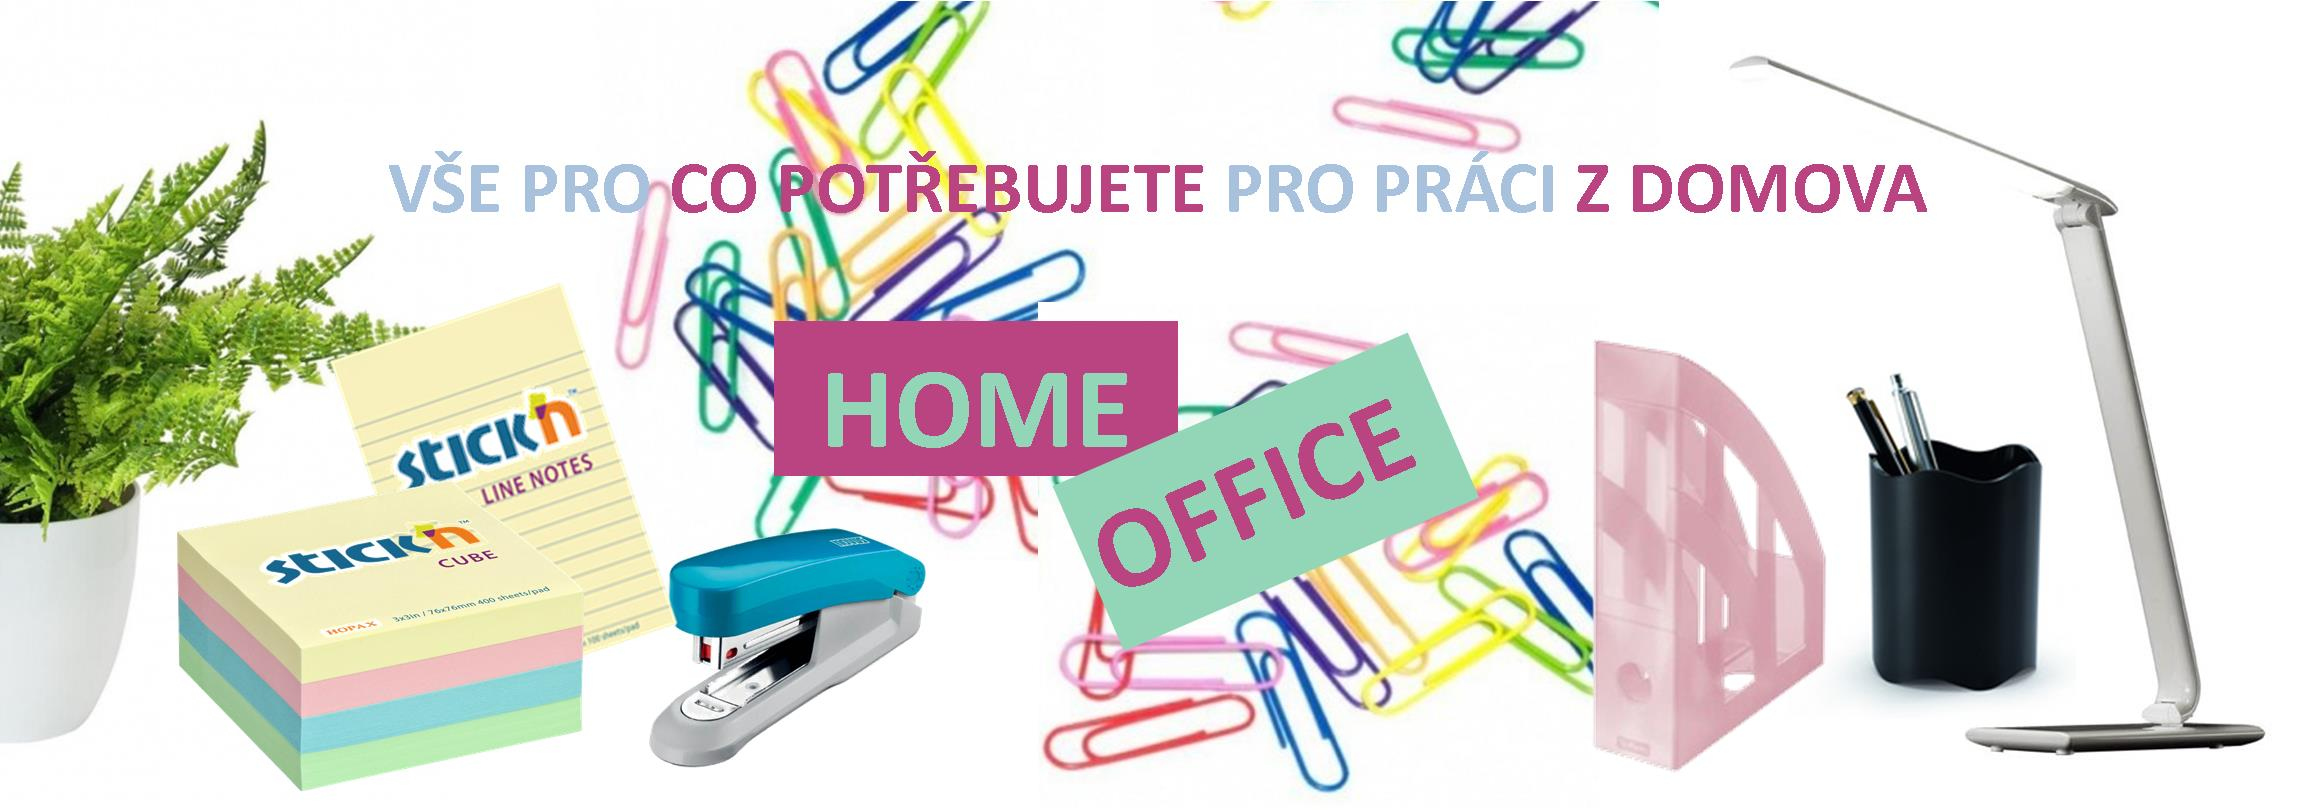 home-office_banner.jpg